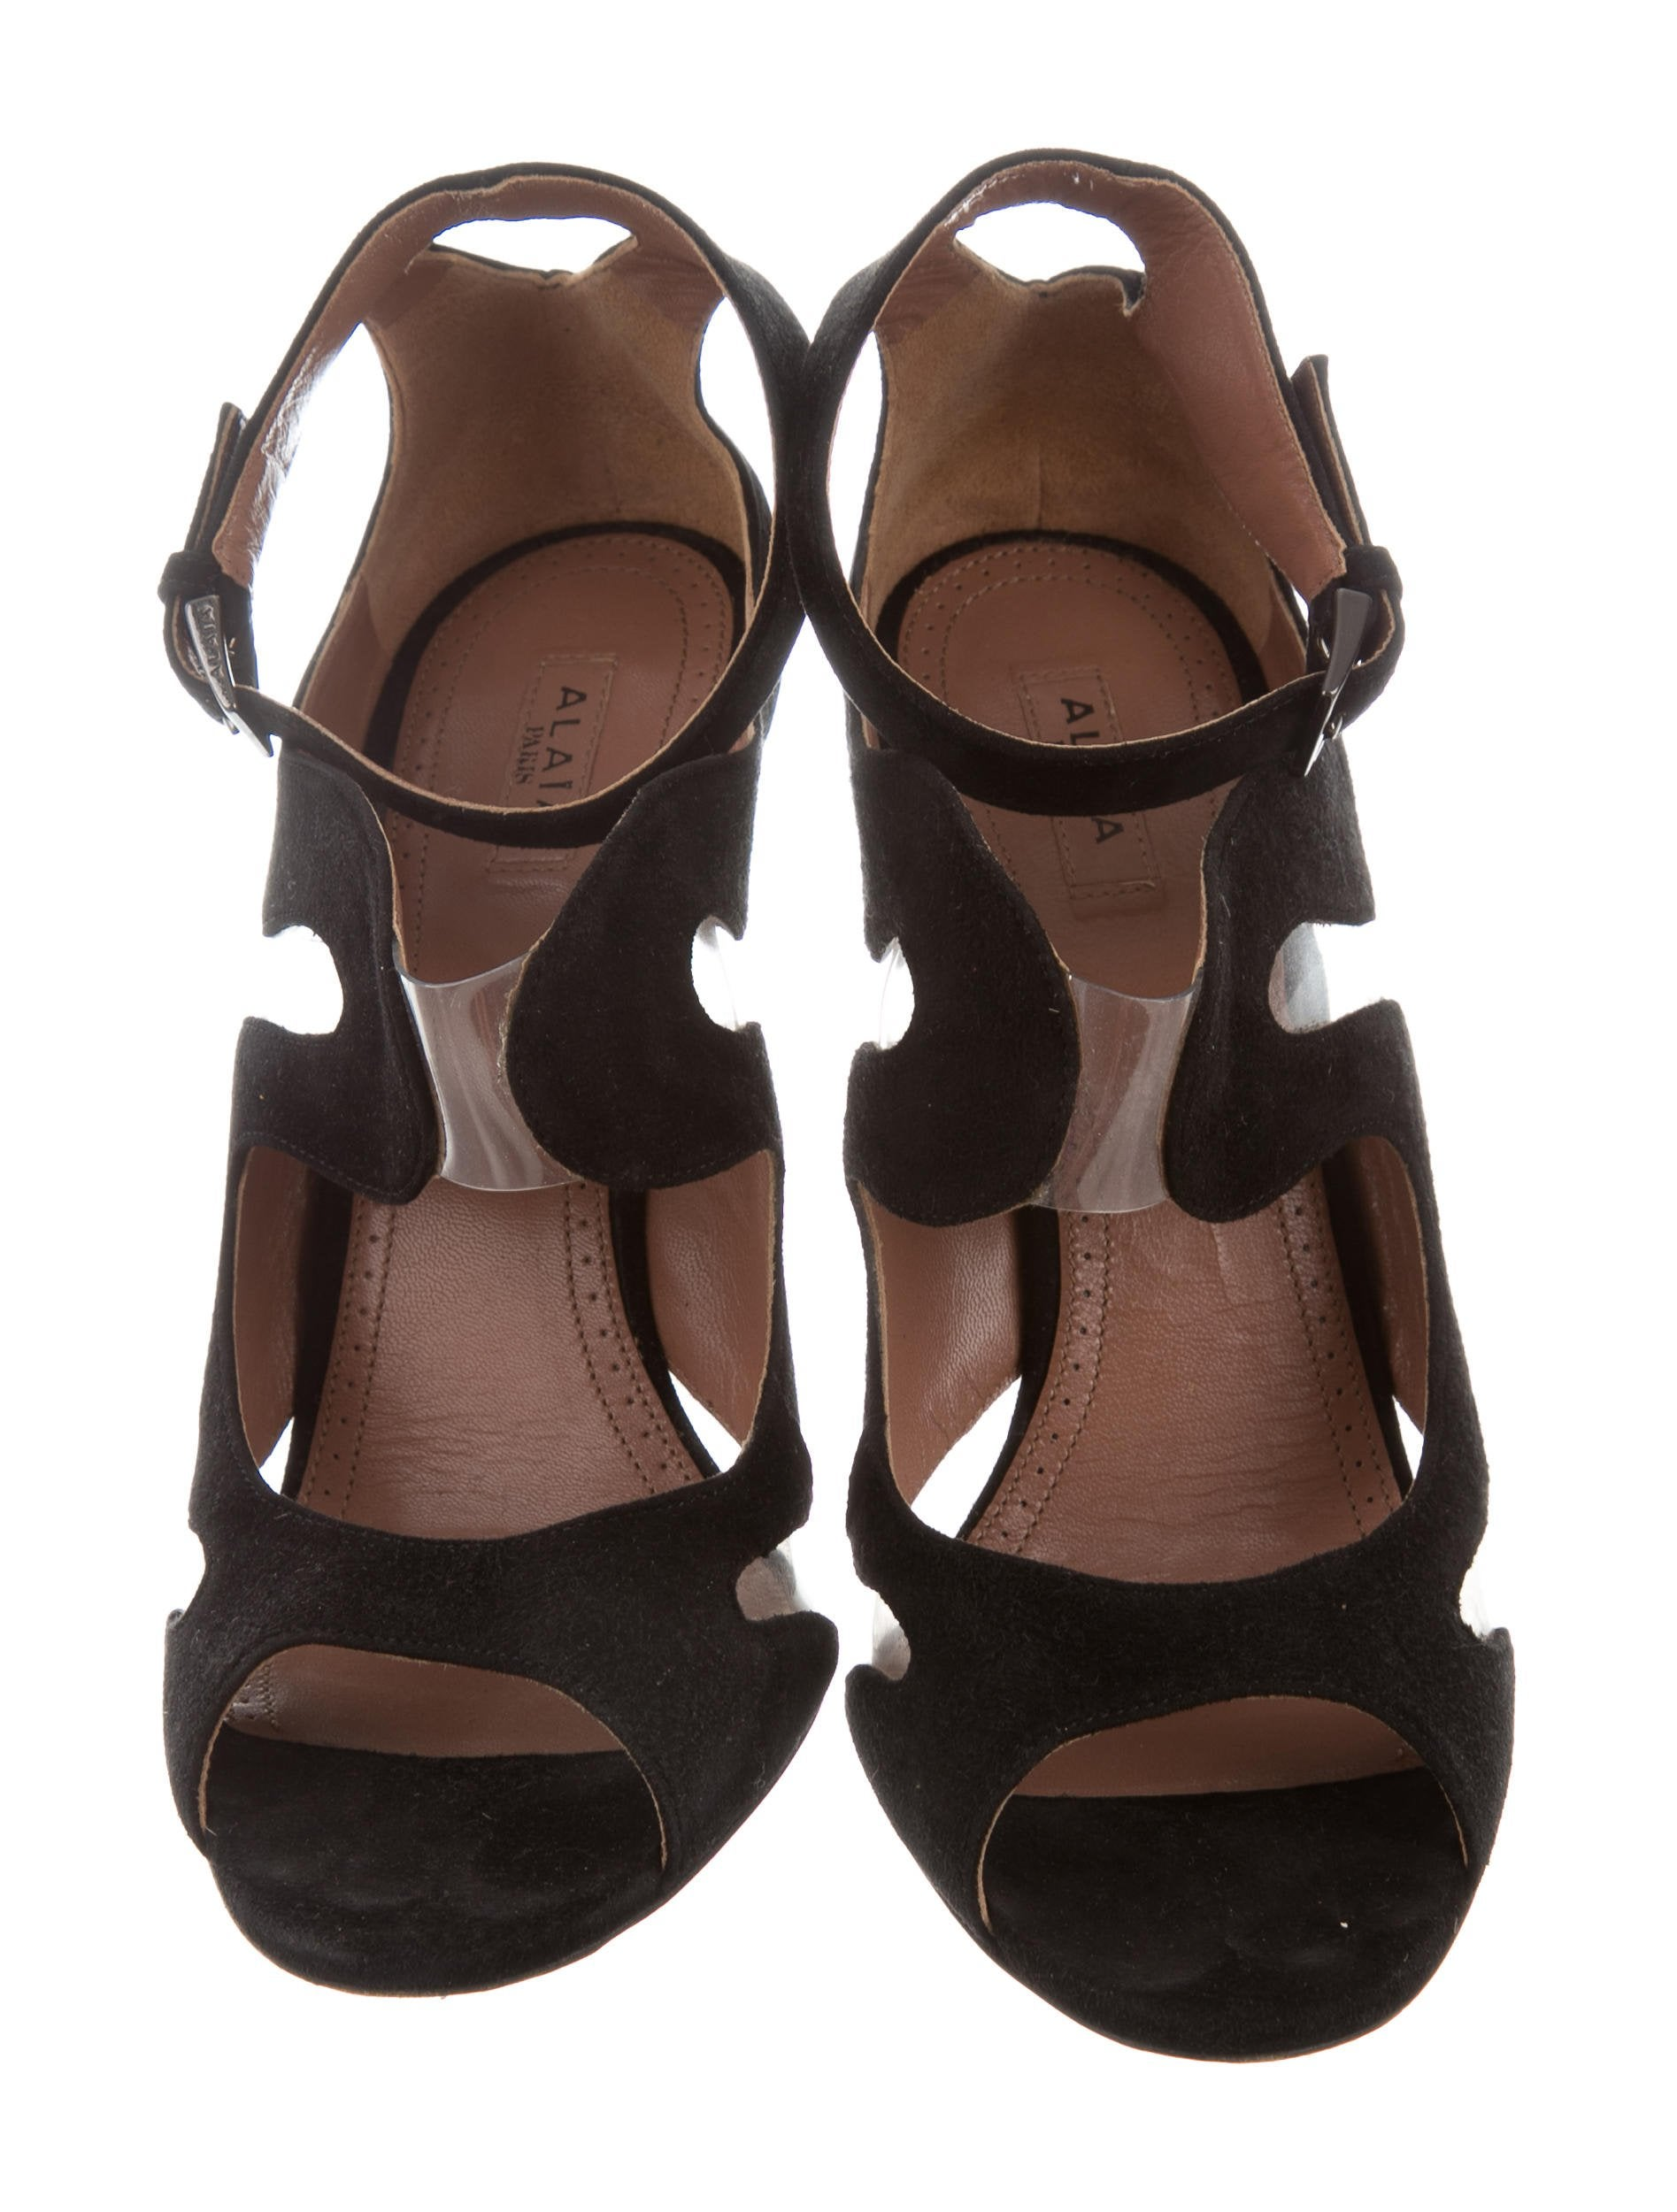 Alaïa Suede PVC-Accented Sandals with credit card free shipping qyMRKeDAC